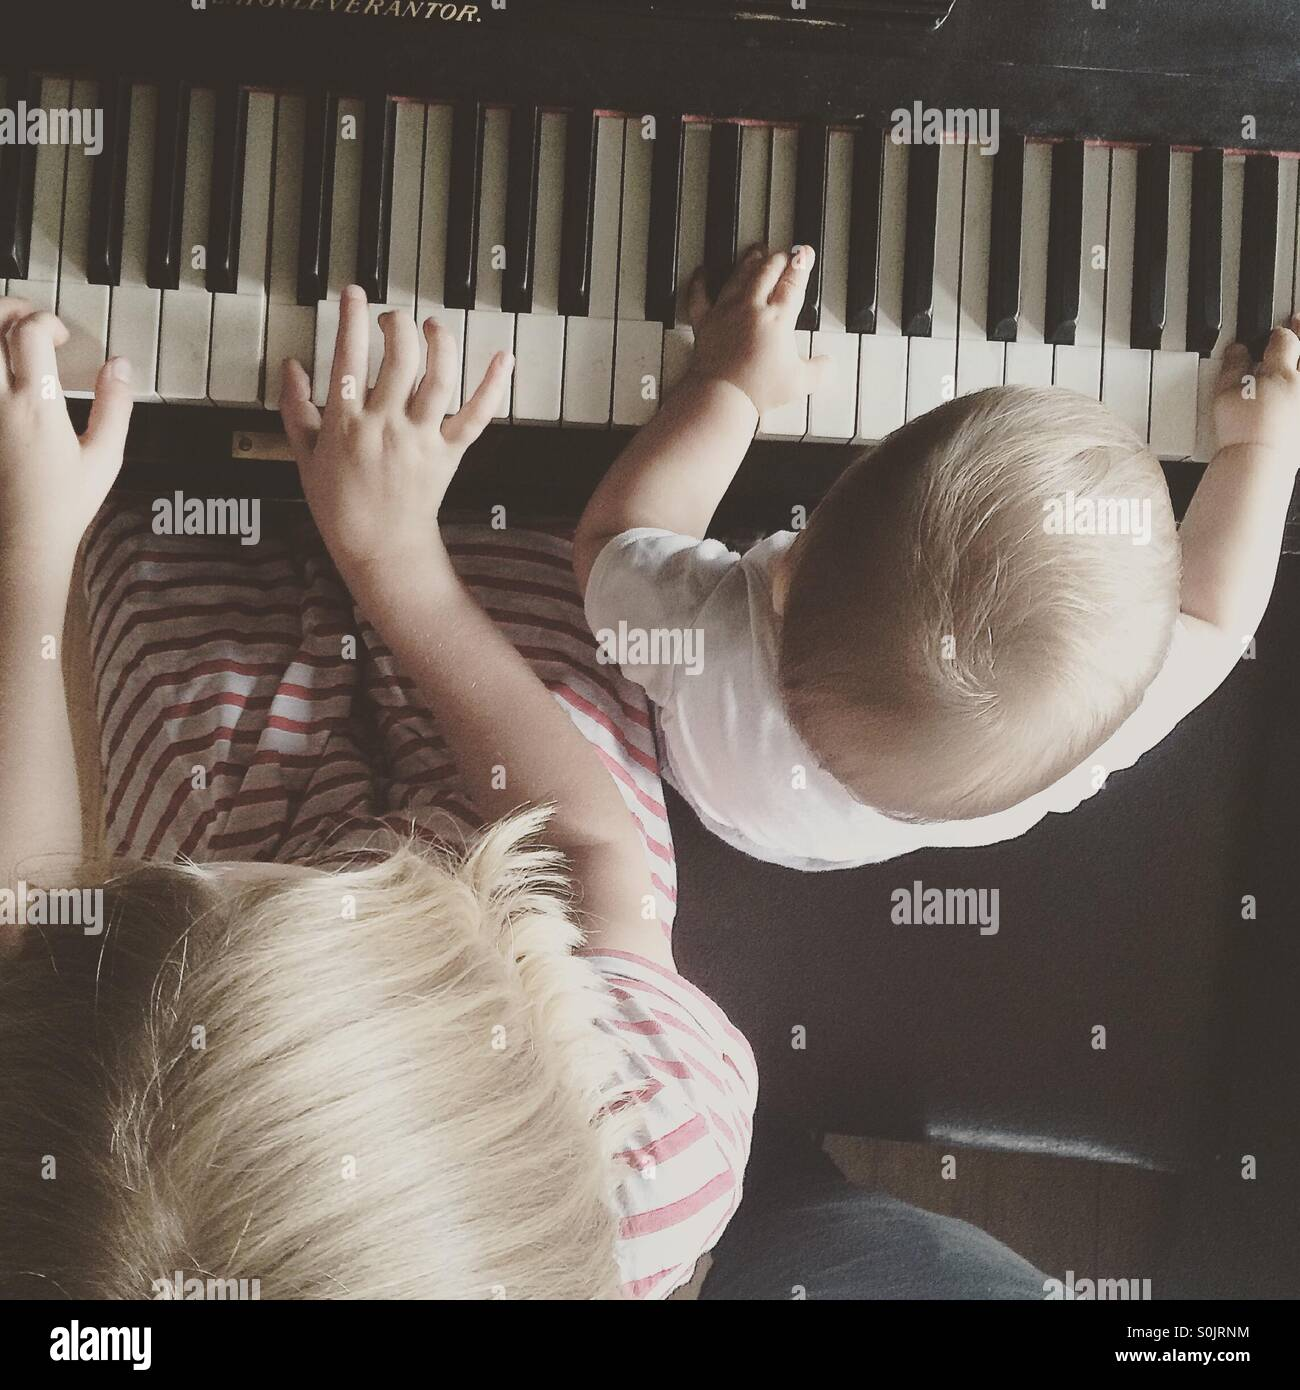 Photo  taken from the top of siblings learning,   playing piano together - Stock Image